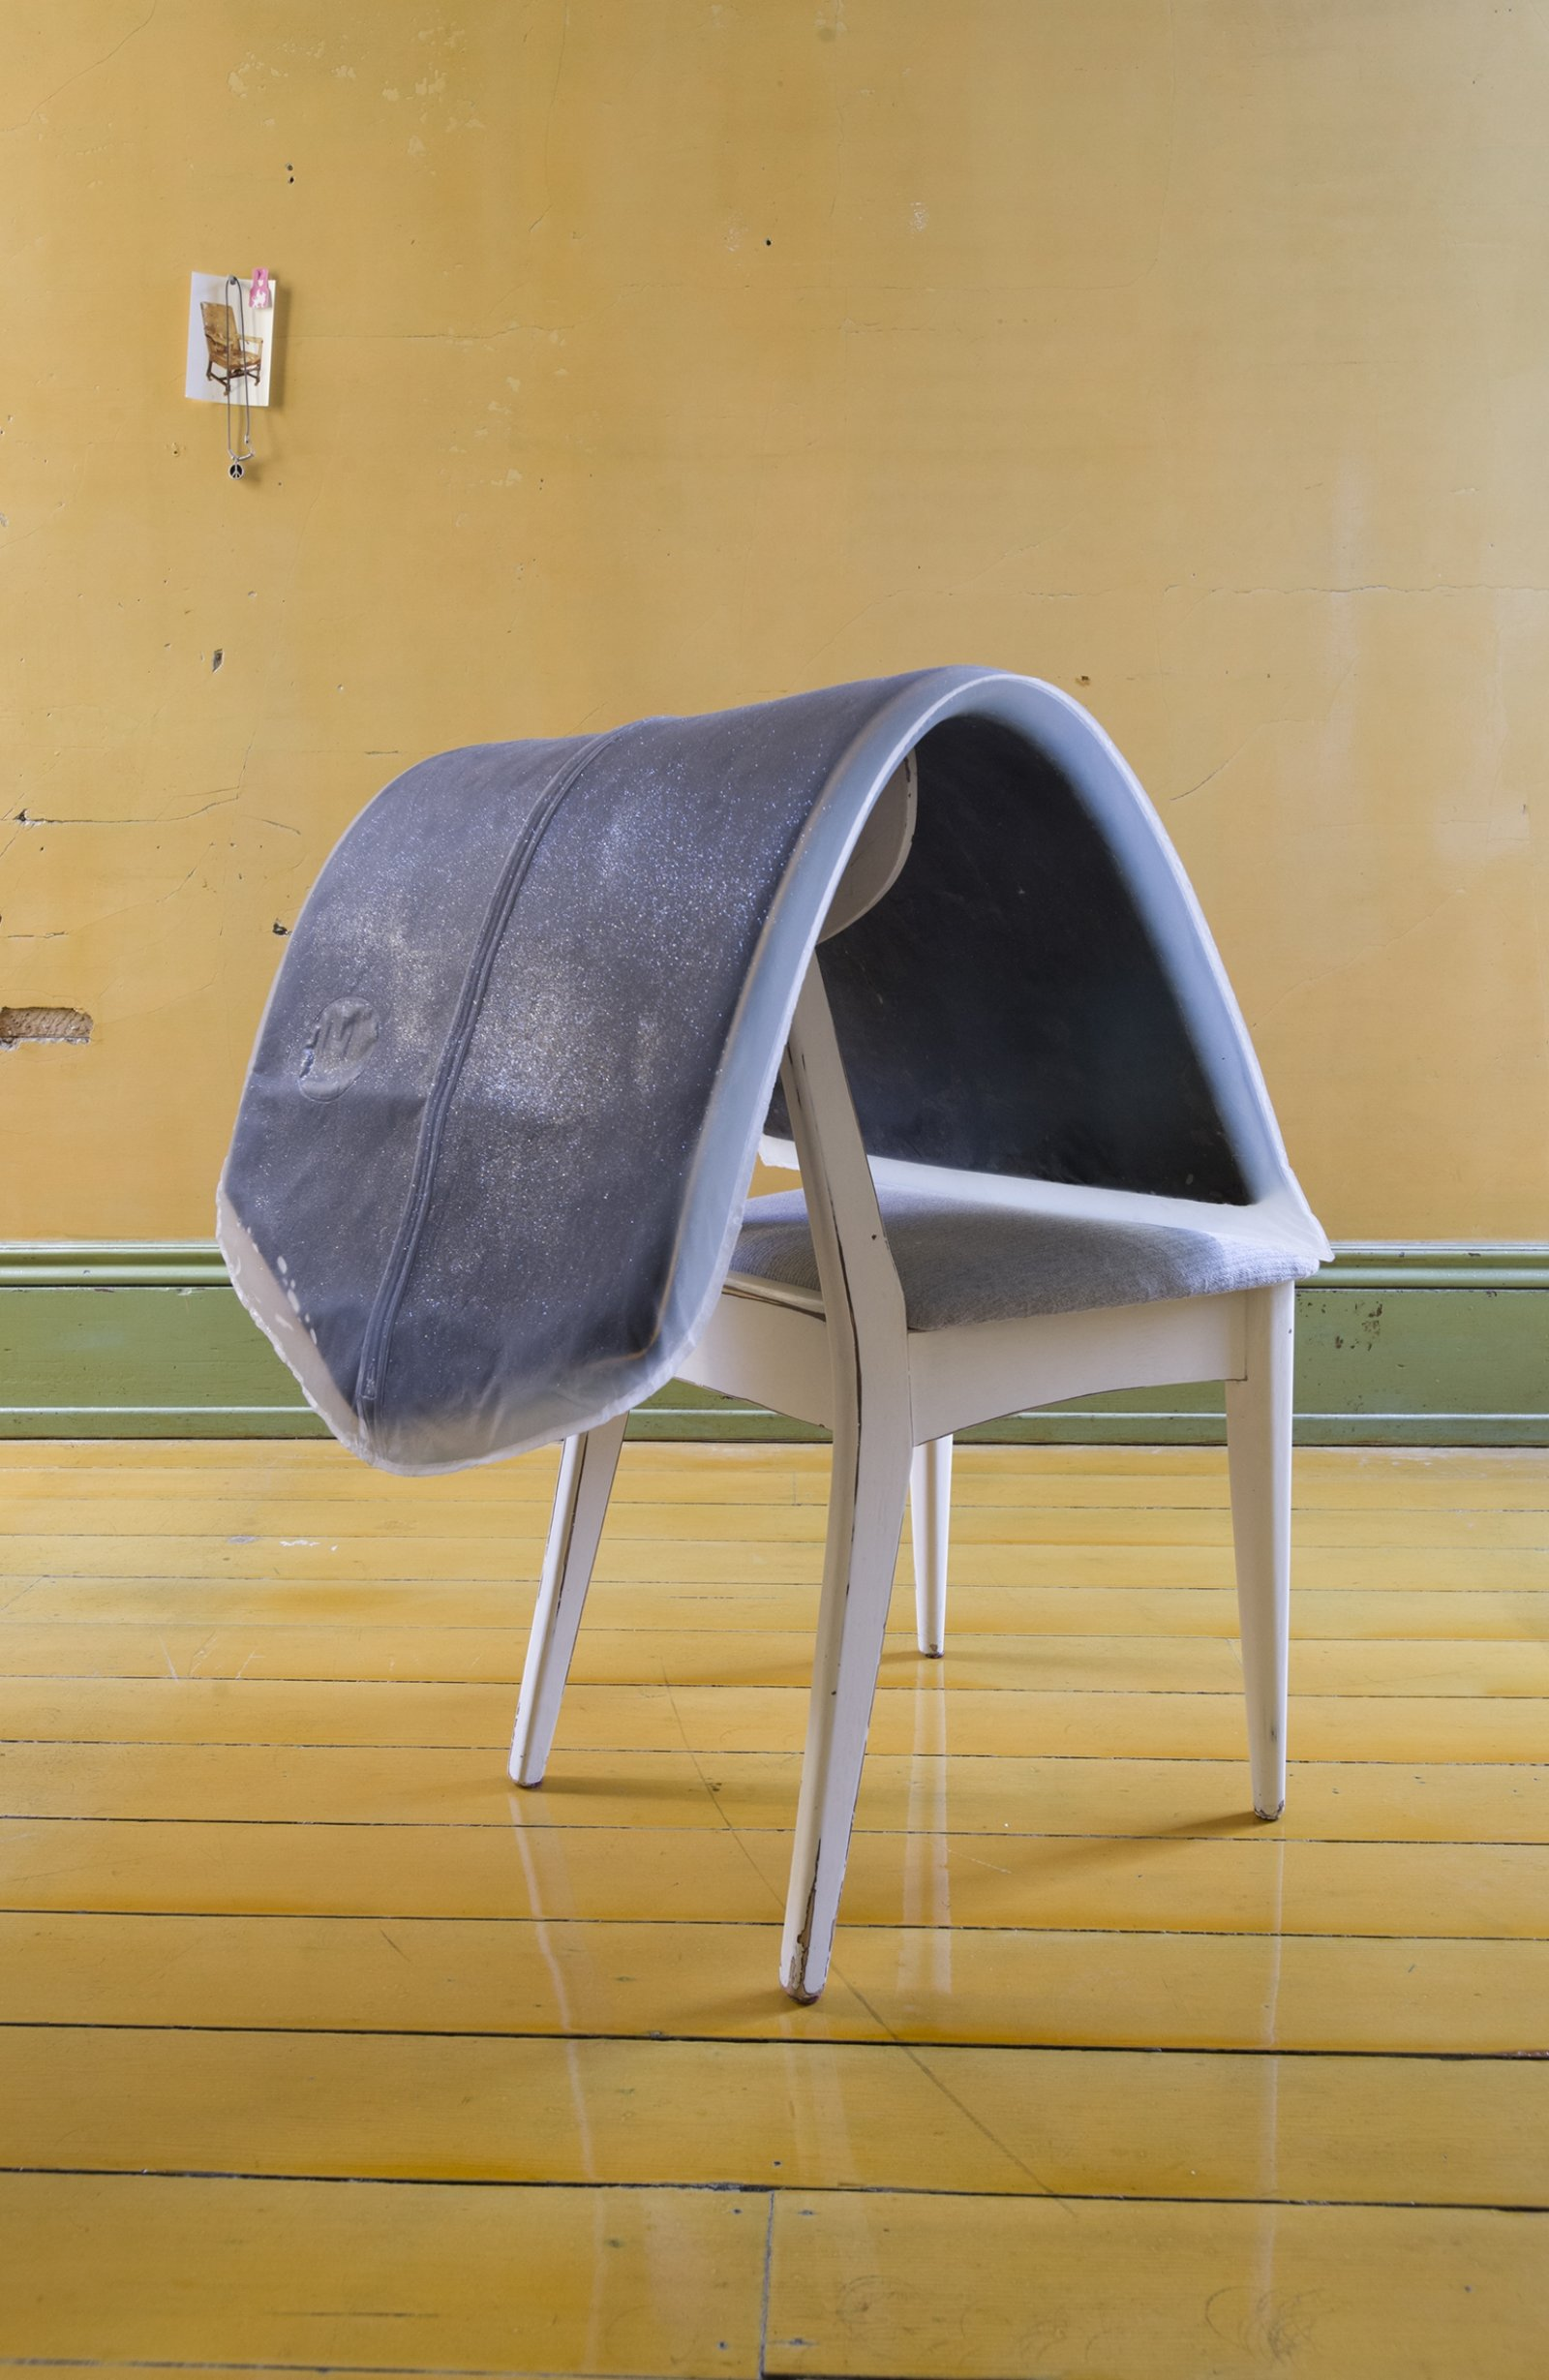 Liz Magor, Formal II, 2012, platinum-cure silicone rubber, chair, 32 x 24 x 26 in. (81 x 61 x 66 cm). Installation view, TIMESHARE, The David Ireland House, 500 Capp Street Foundation, San Francisco, USA, 2019 by Liz Magor